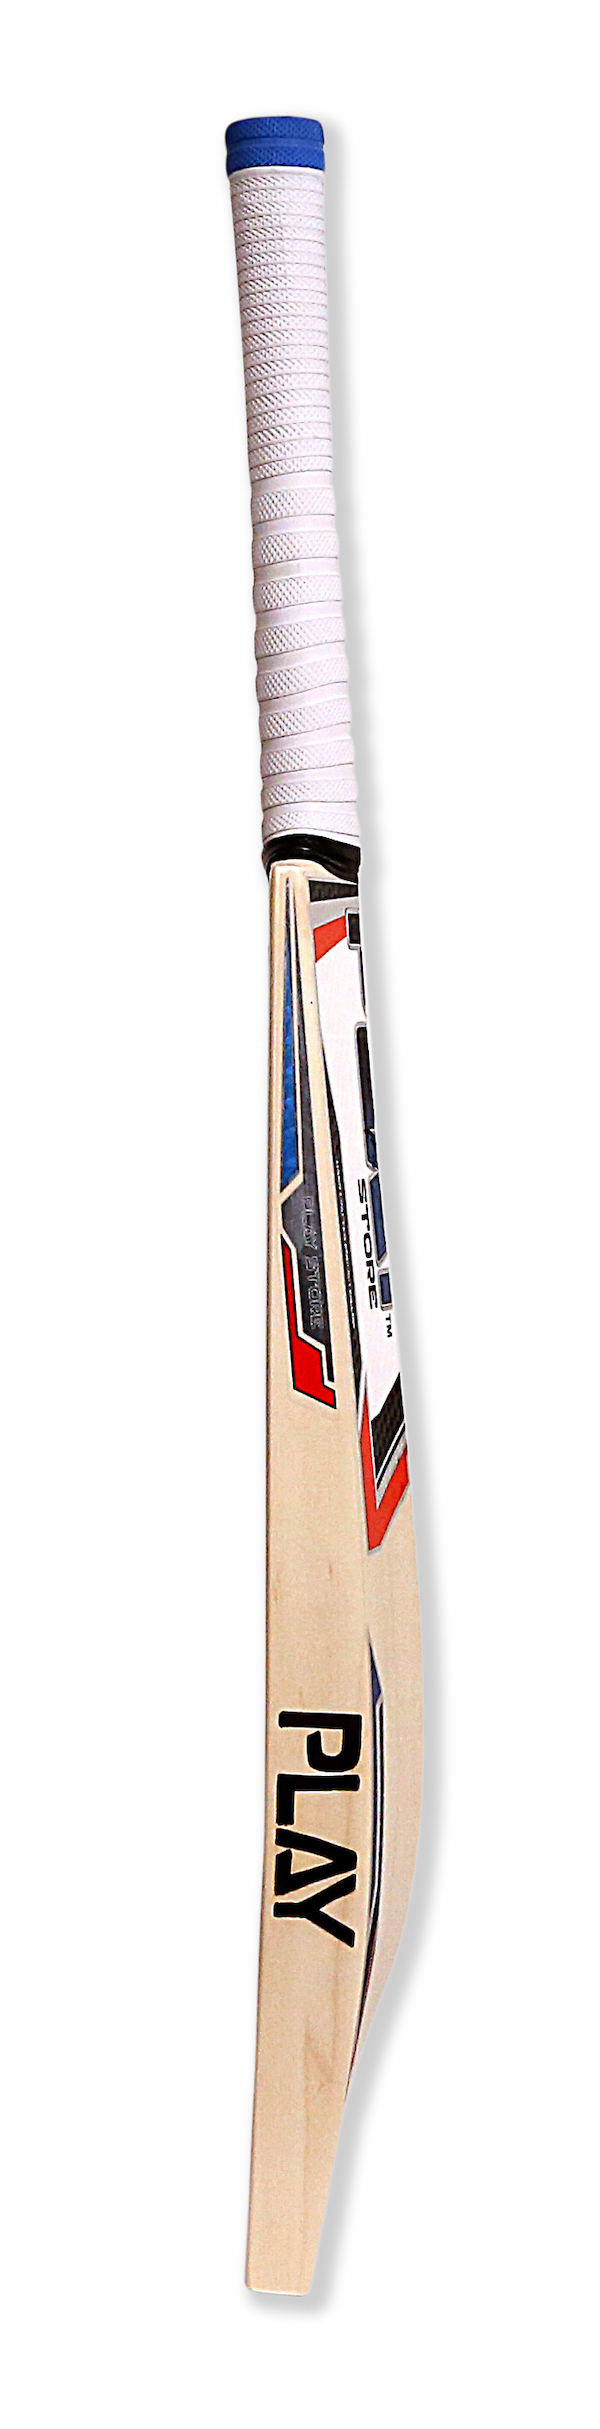 PLAY Limited Edition Cricket Bat